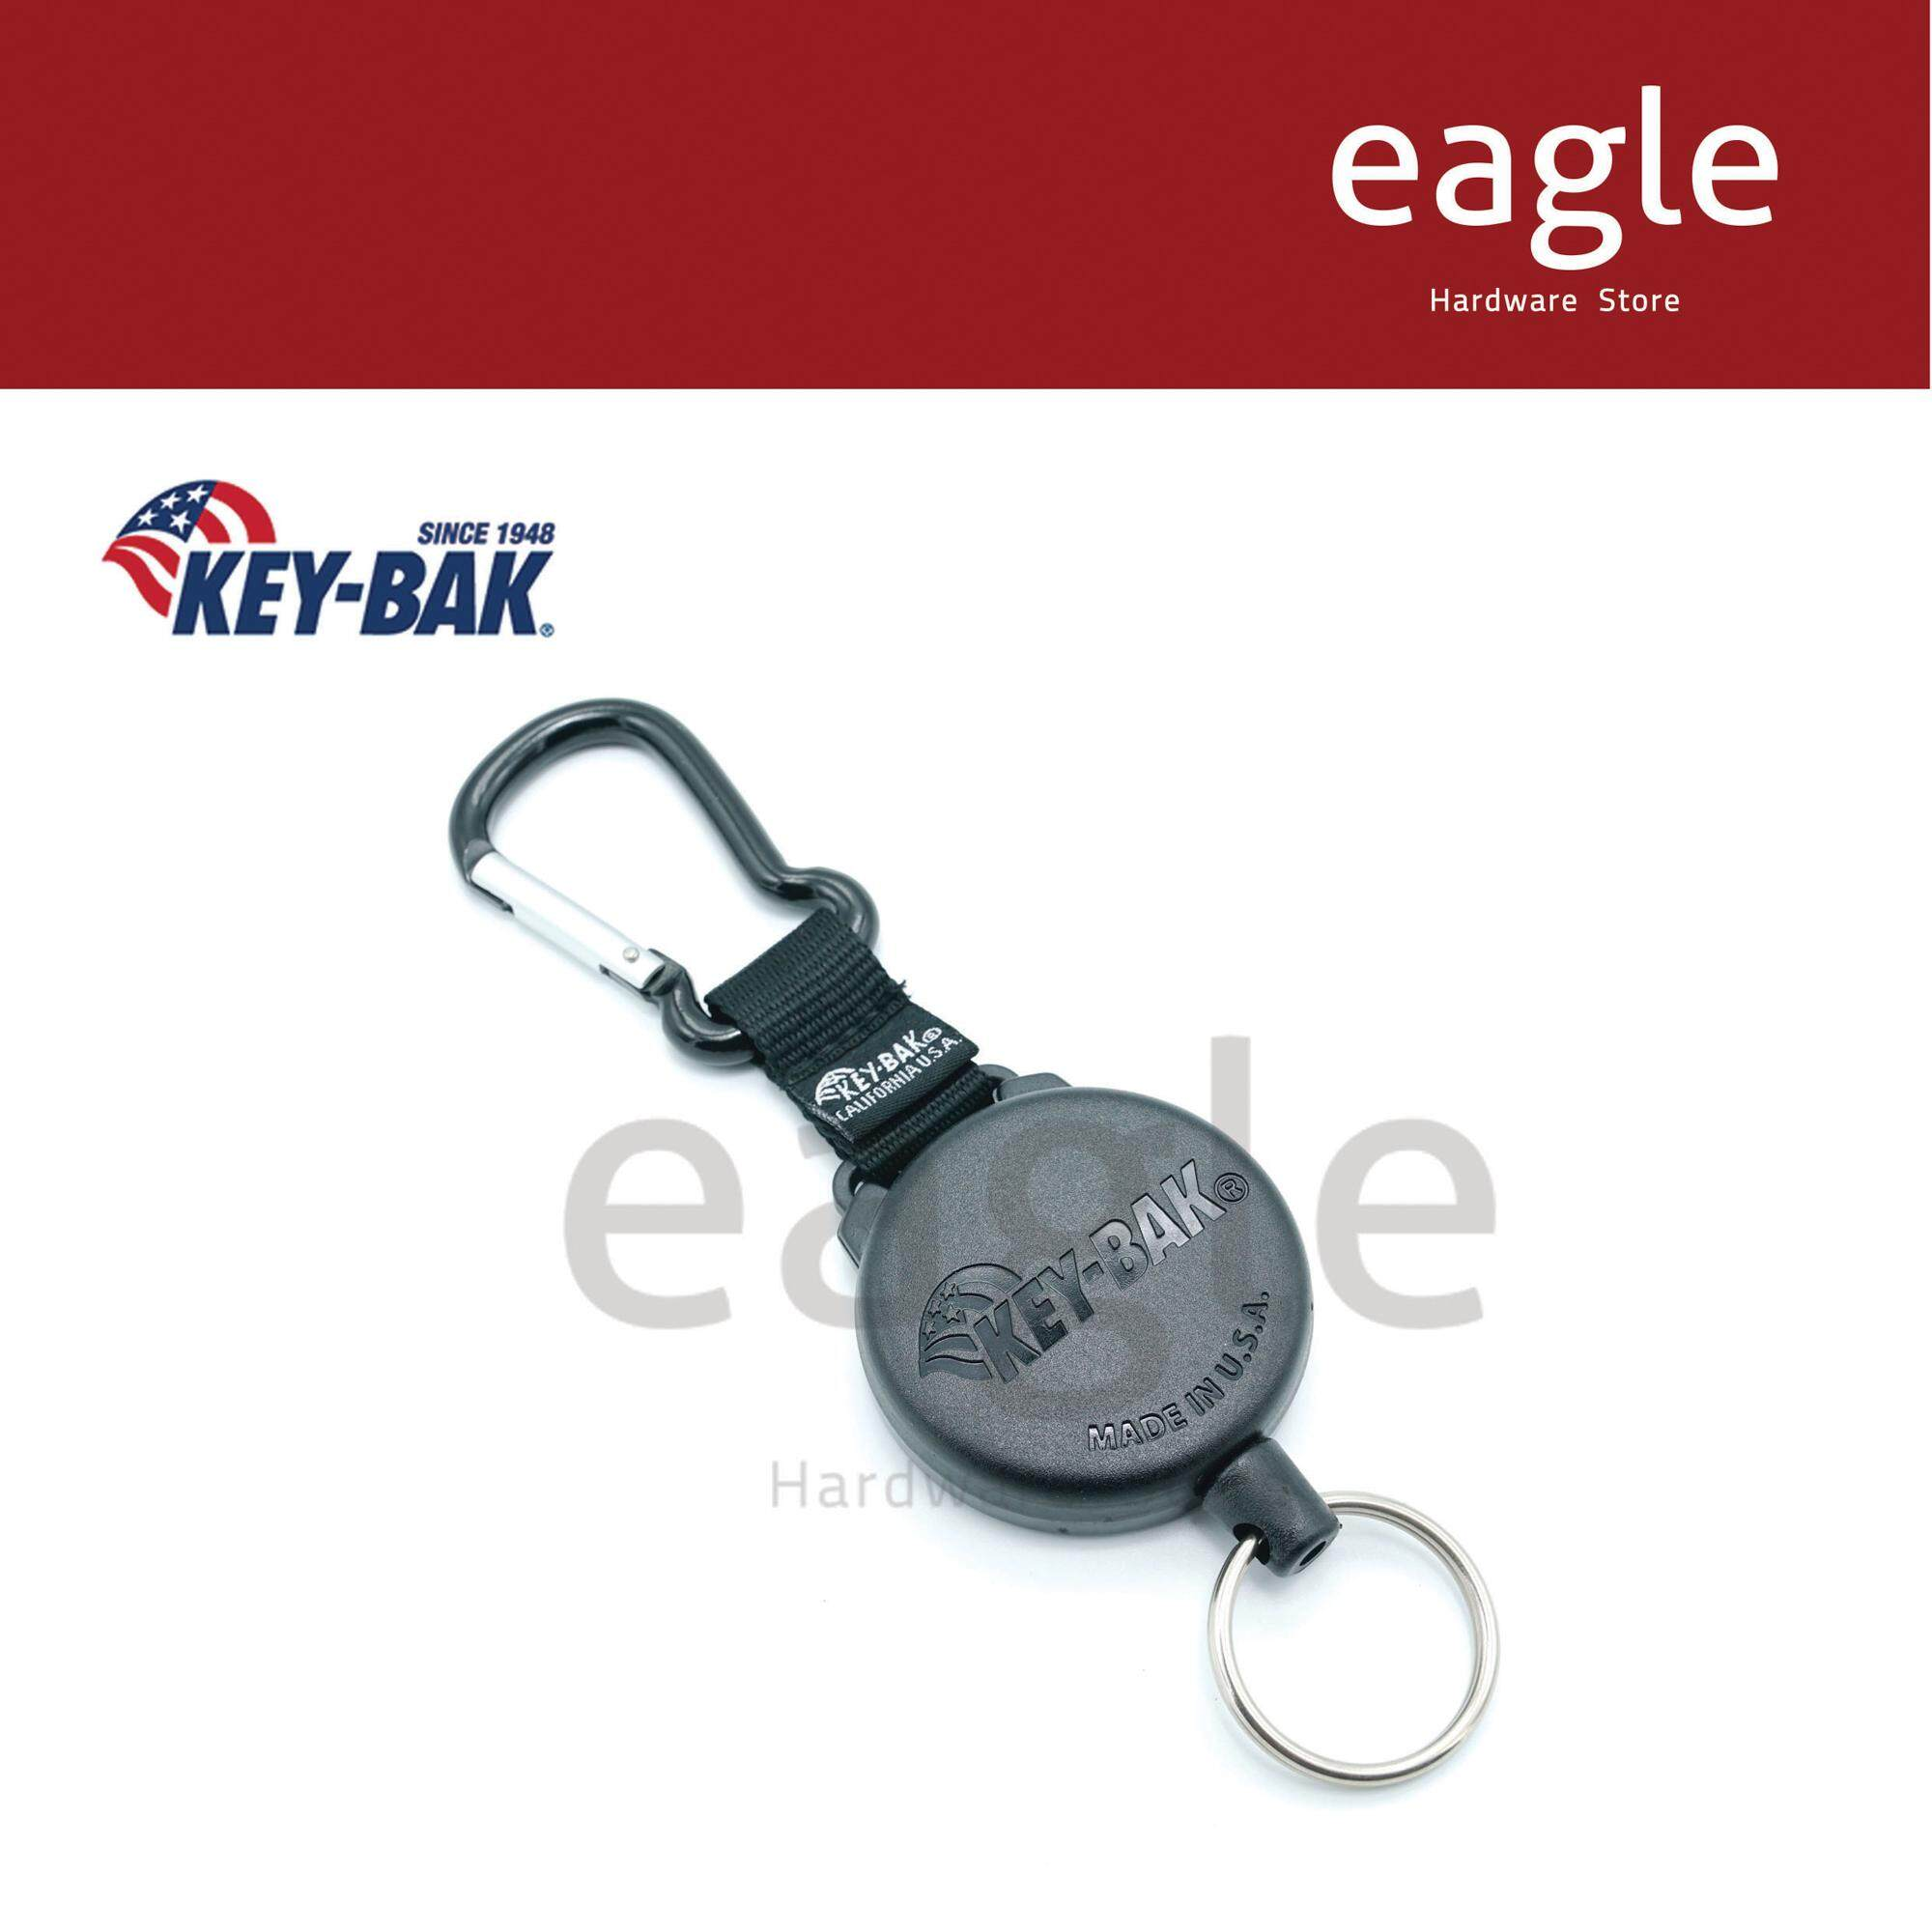 8 oz Split Ring 2.25 Leather Belt Loop Retraction Chrome Front KEY-BAK DUTY-GEAR Retractable Key Holder with 24 Stainless Steel Chain